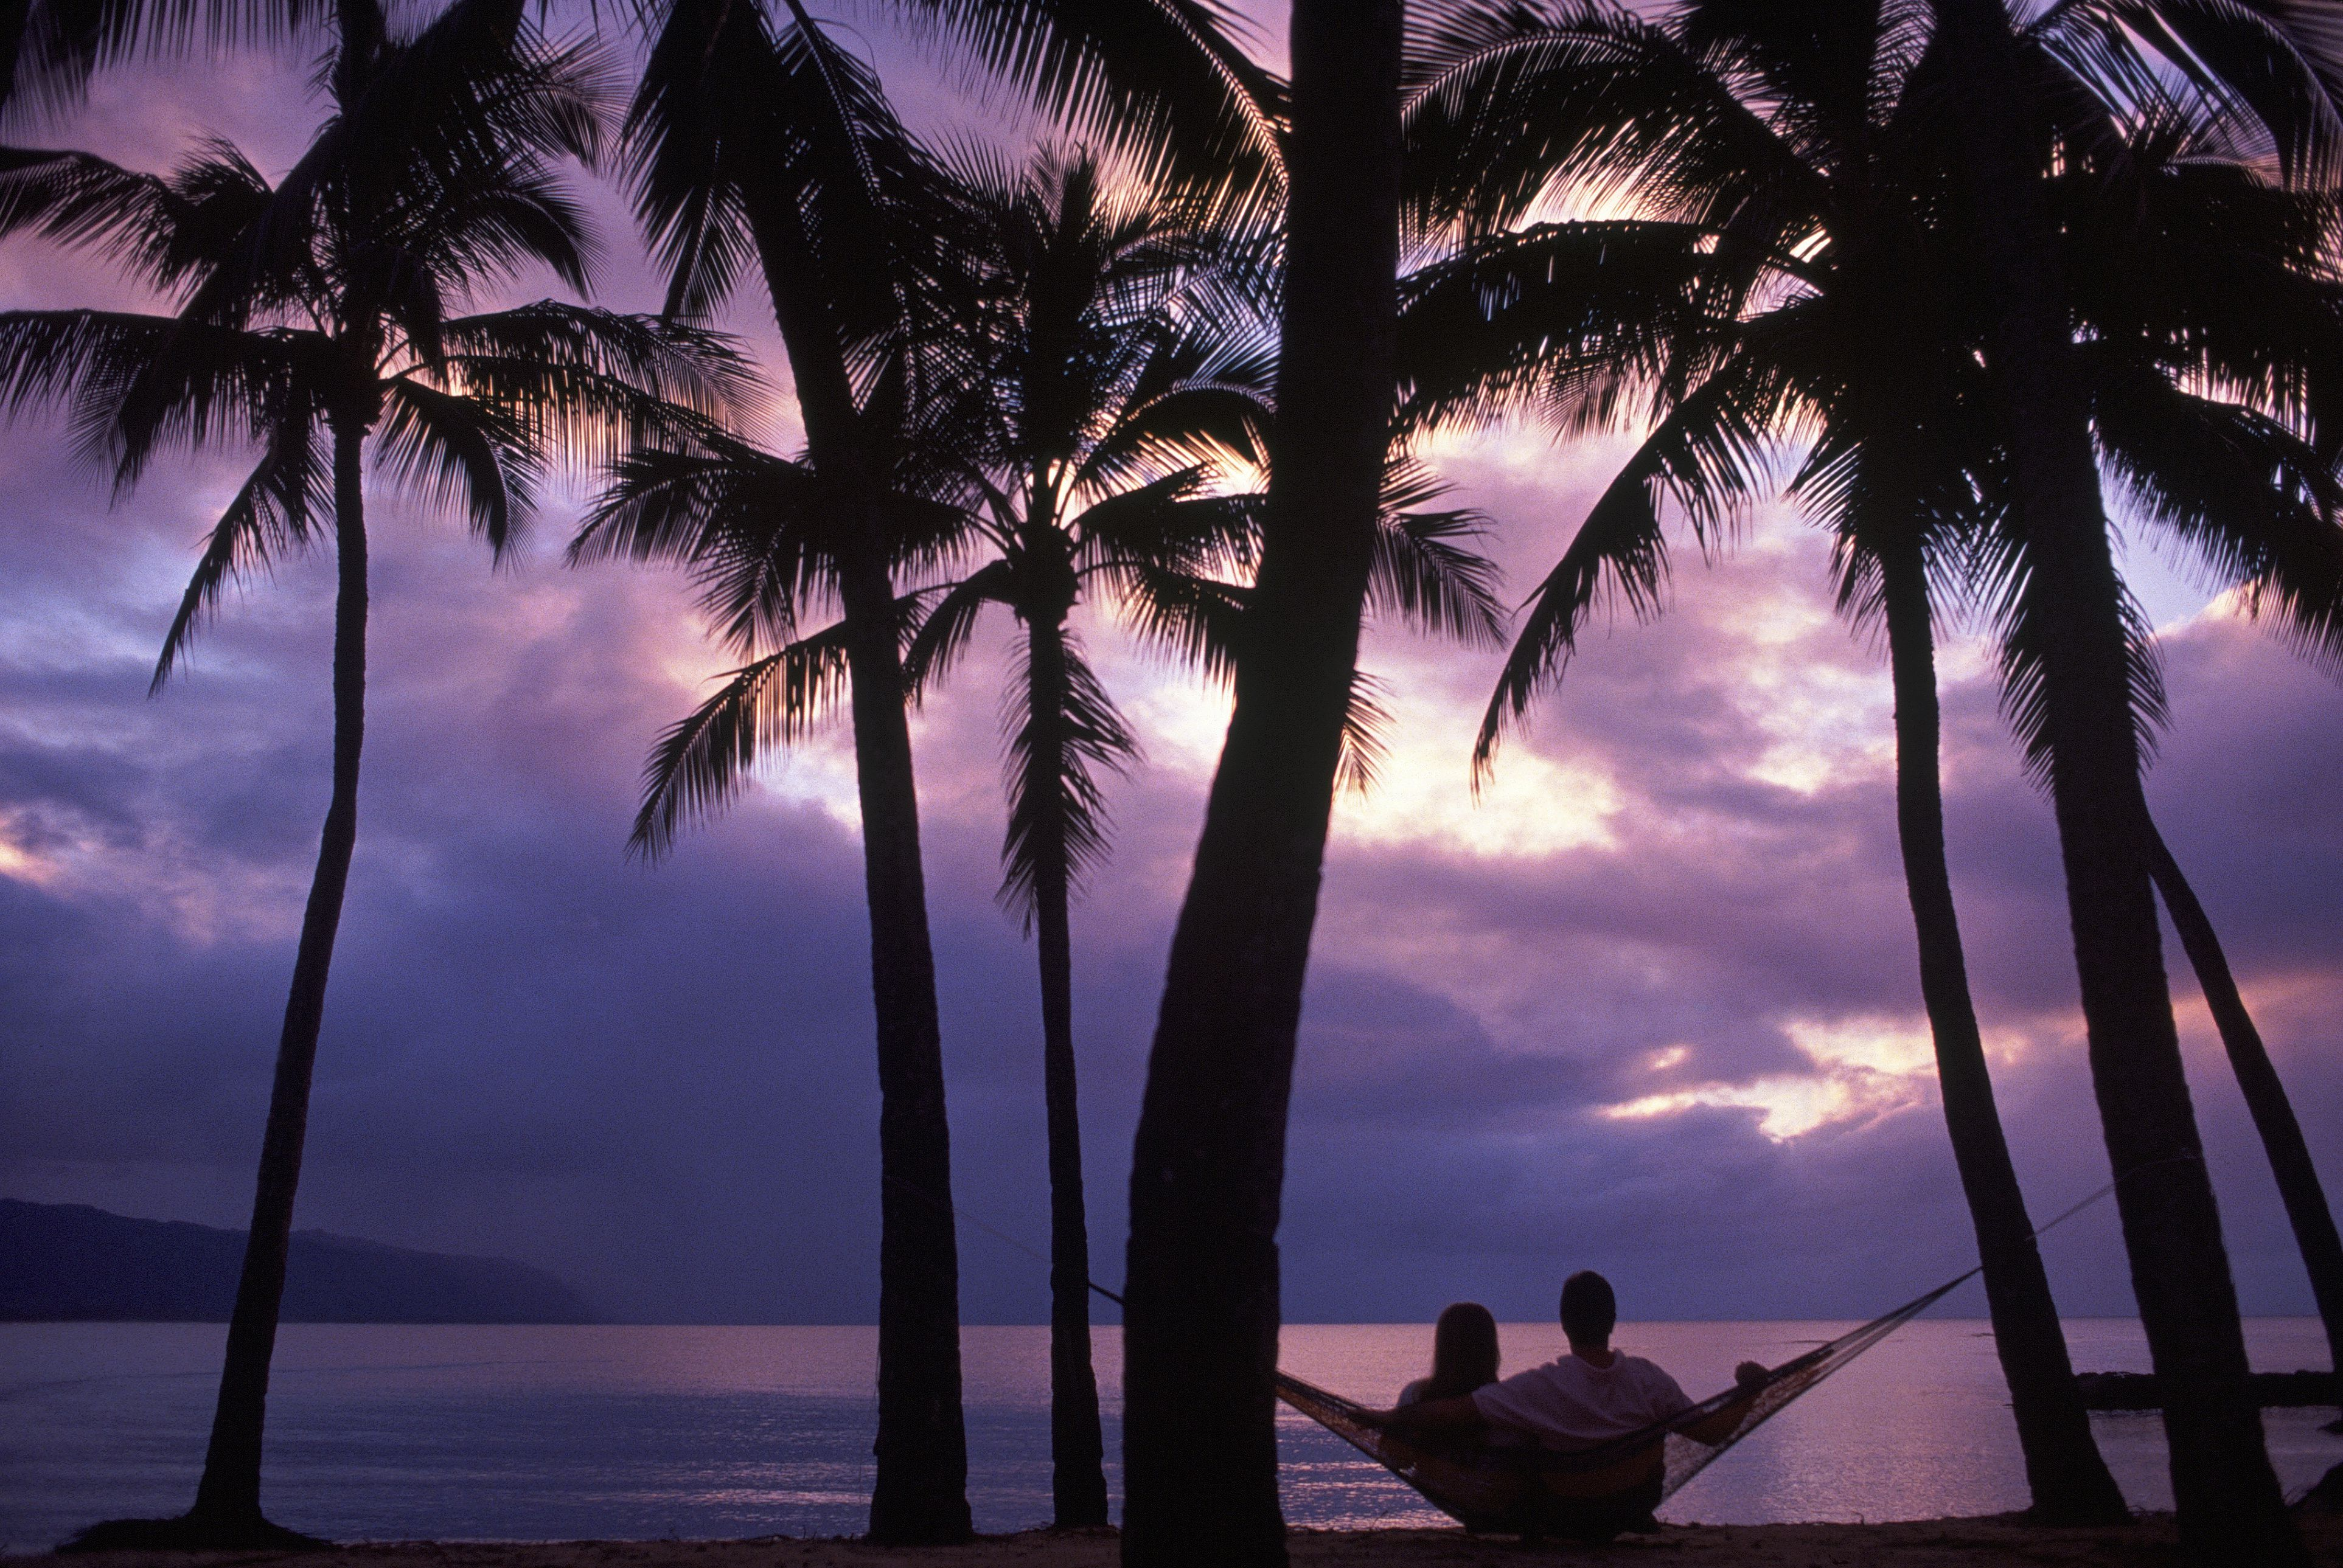 Couple sitting on a hammock surrounded by palm trees with a a purple-ish cloudy sky